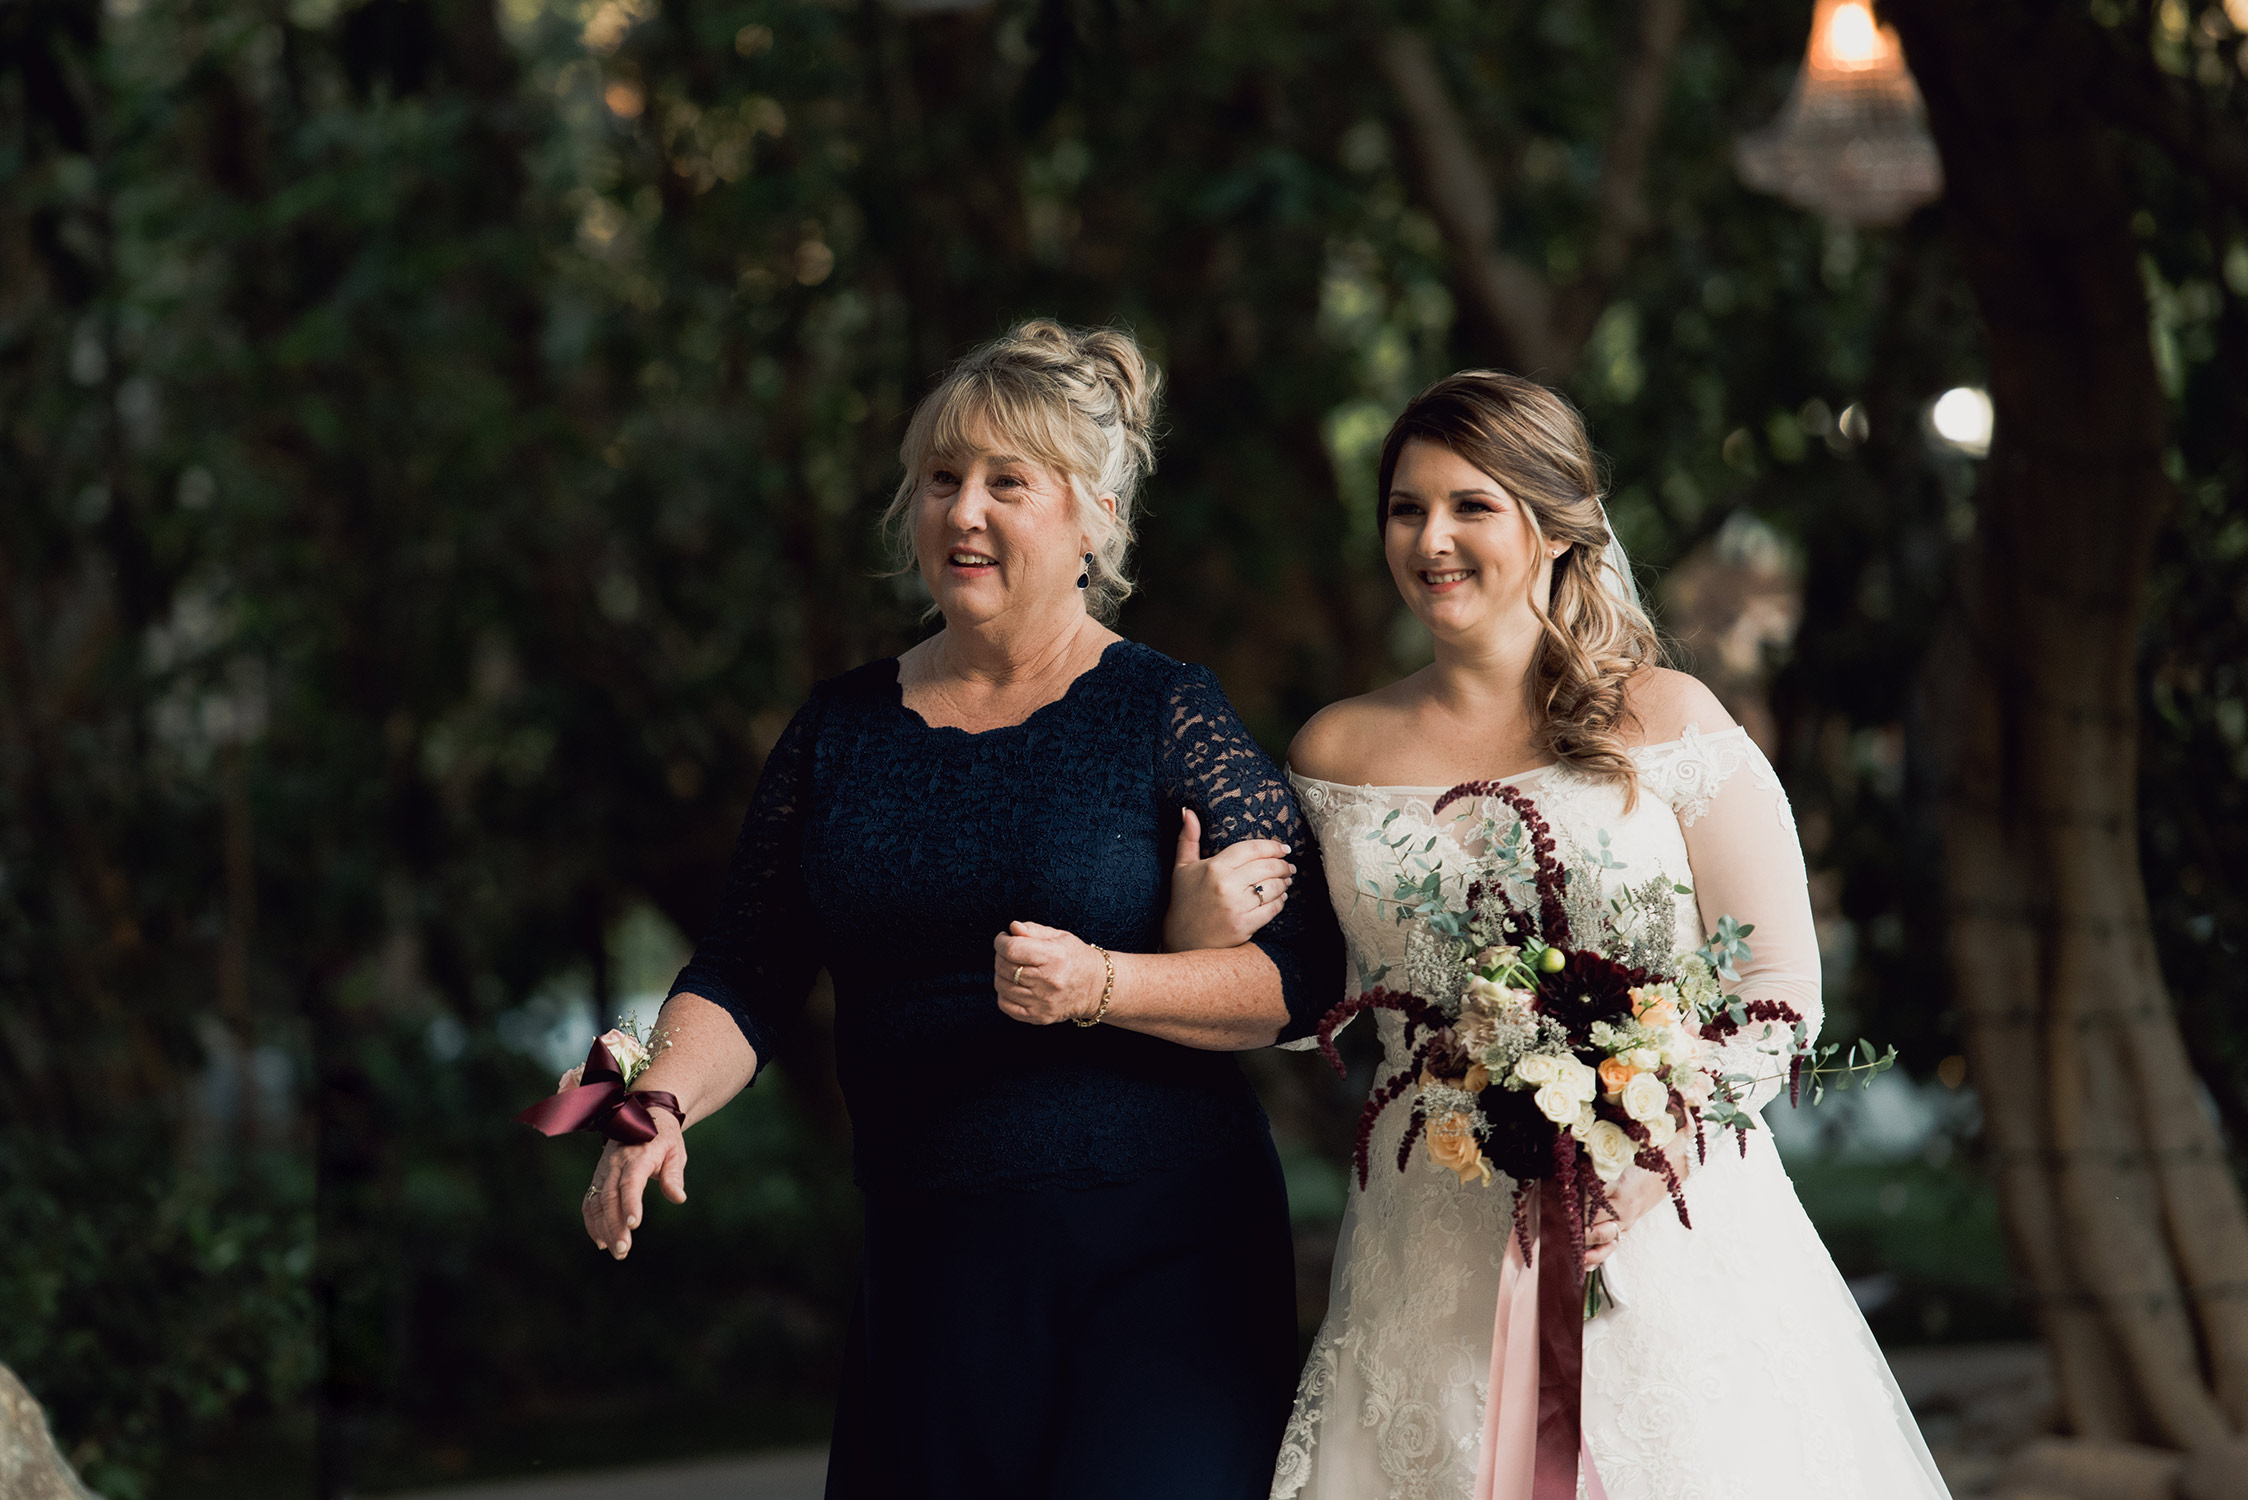 181103_Costa-wedding_395web.jpg